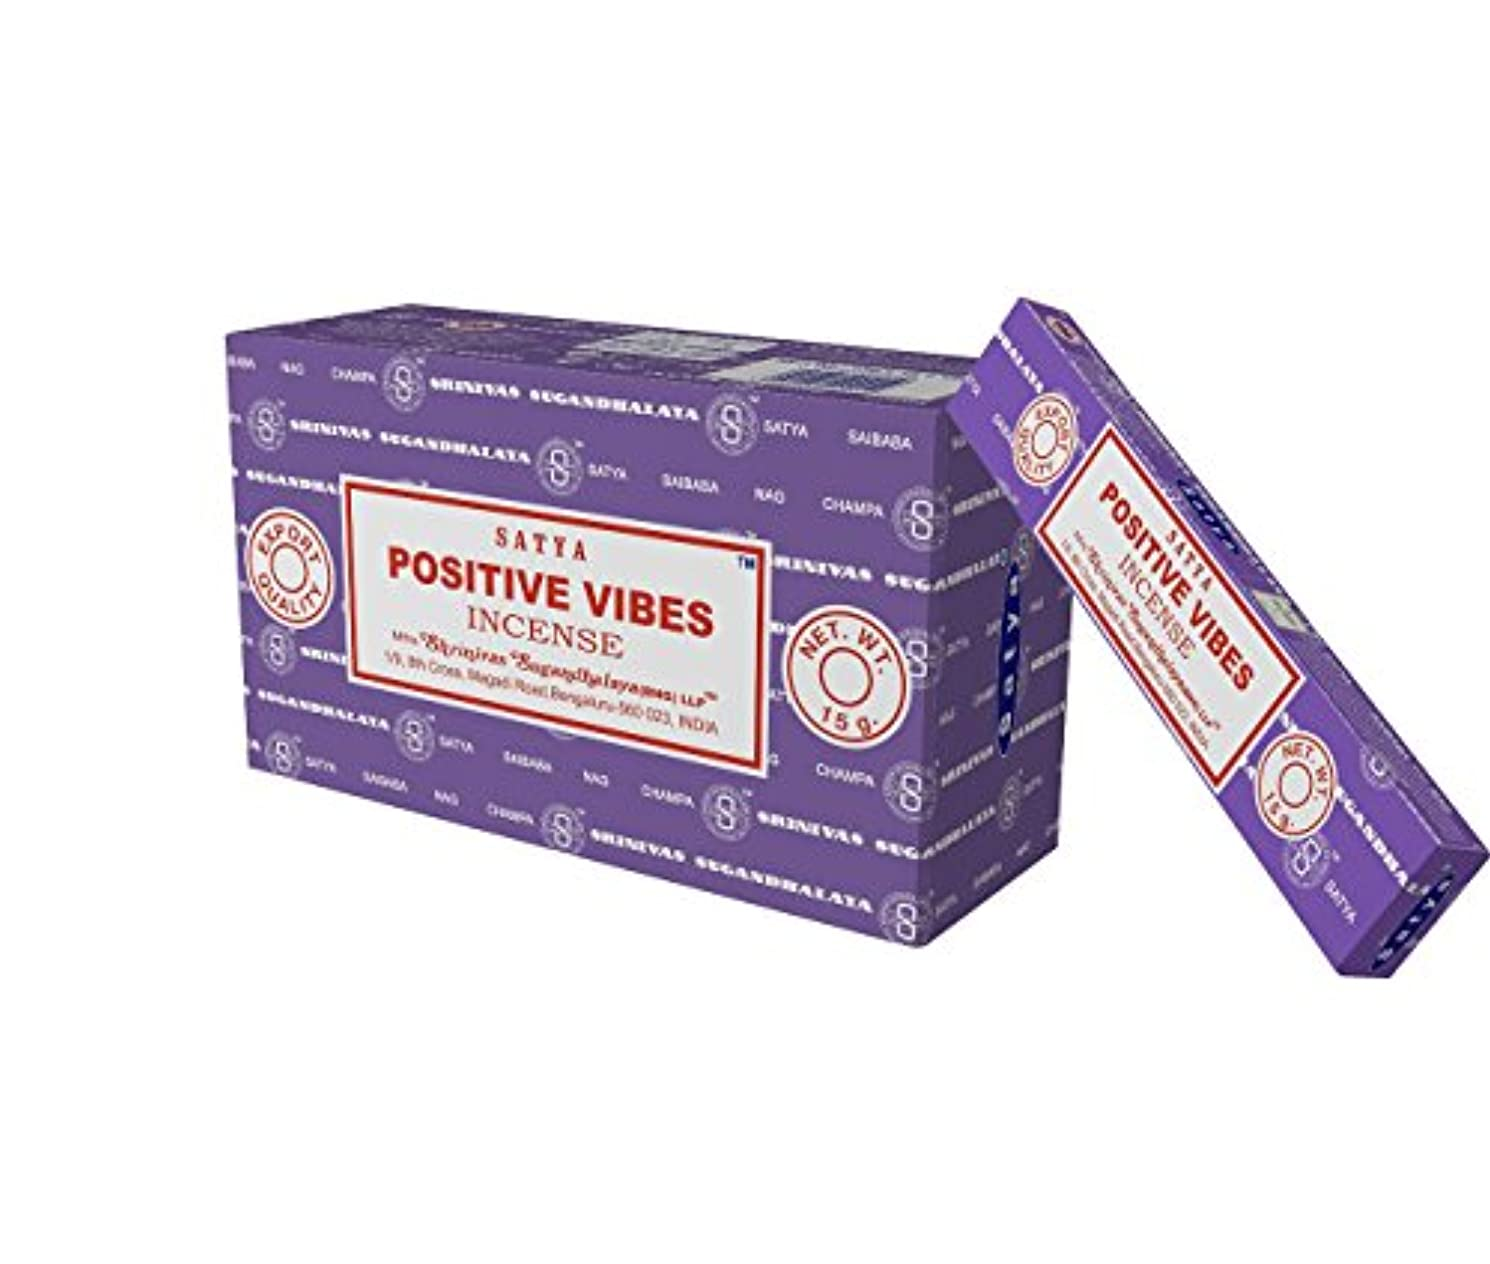 しゃがむ体系的に気づくSatya Nag Champa Positive Vibes Incense Sticks、12カウント